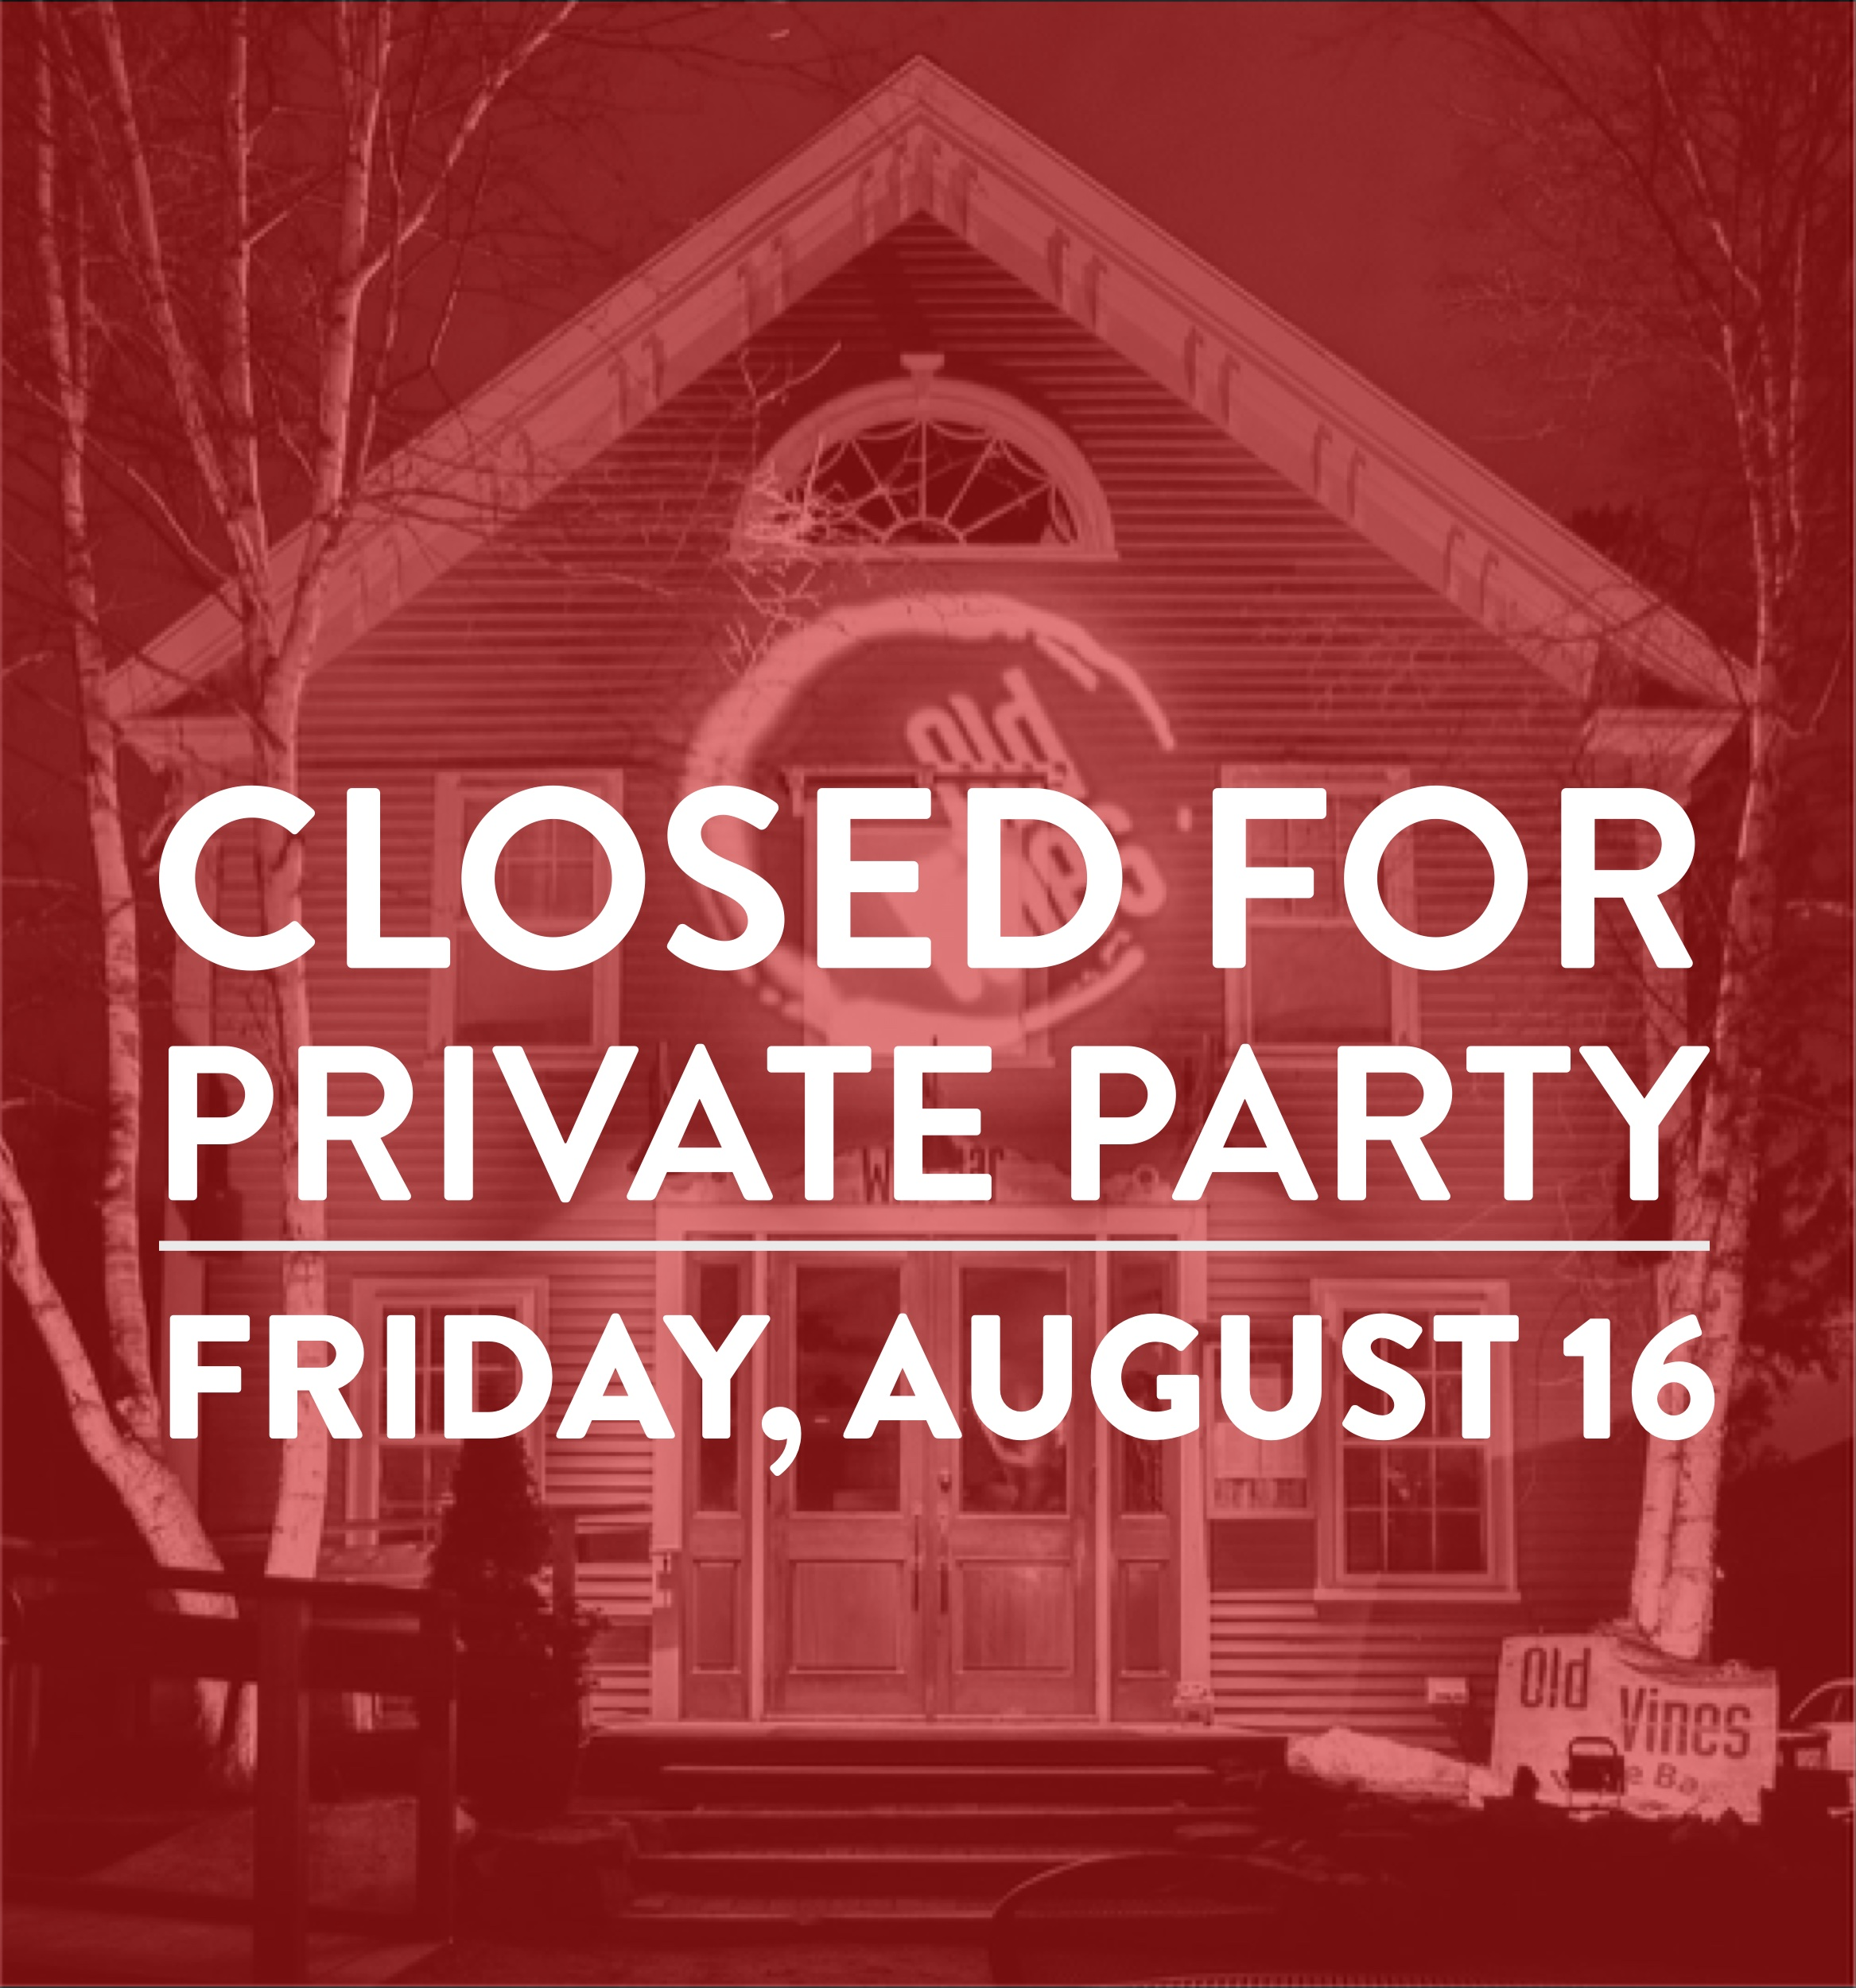 2017 closed for private party aug 16.jpg